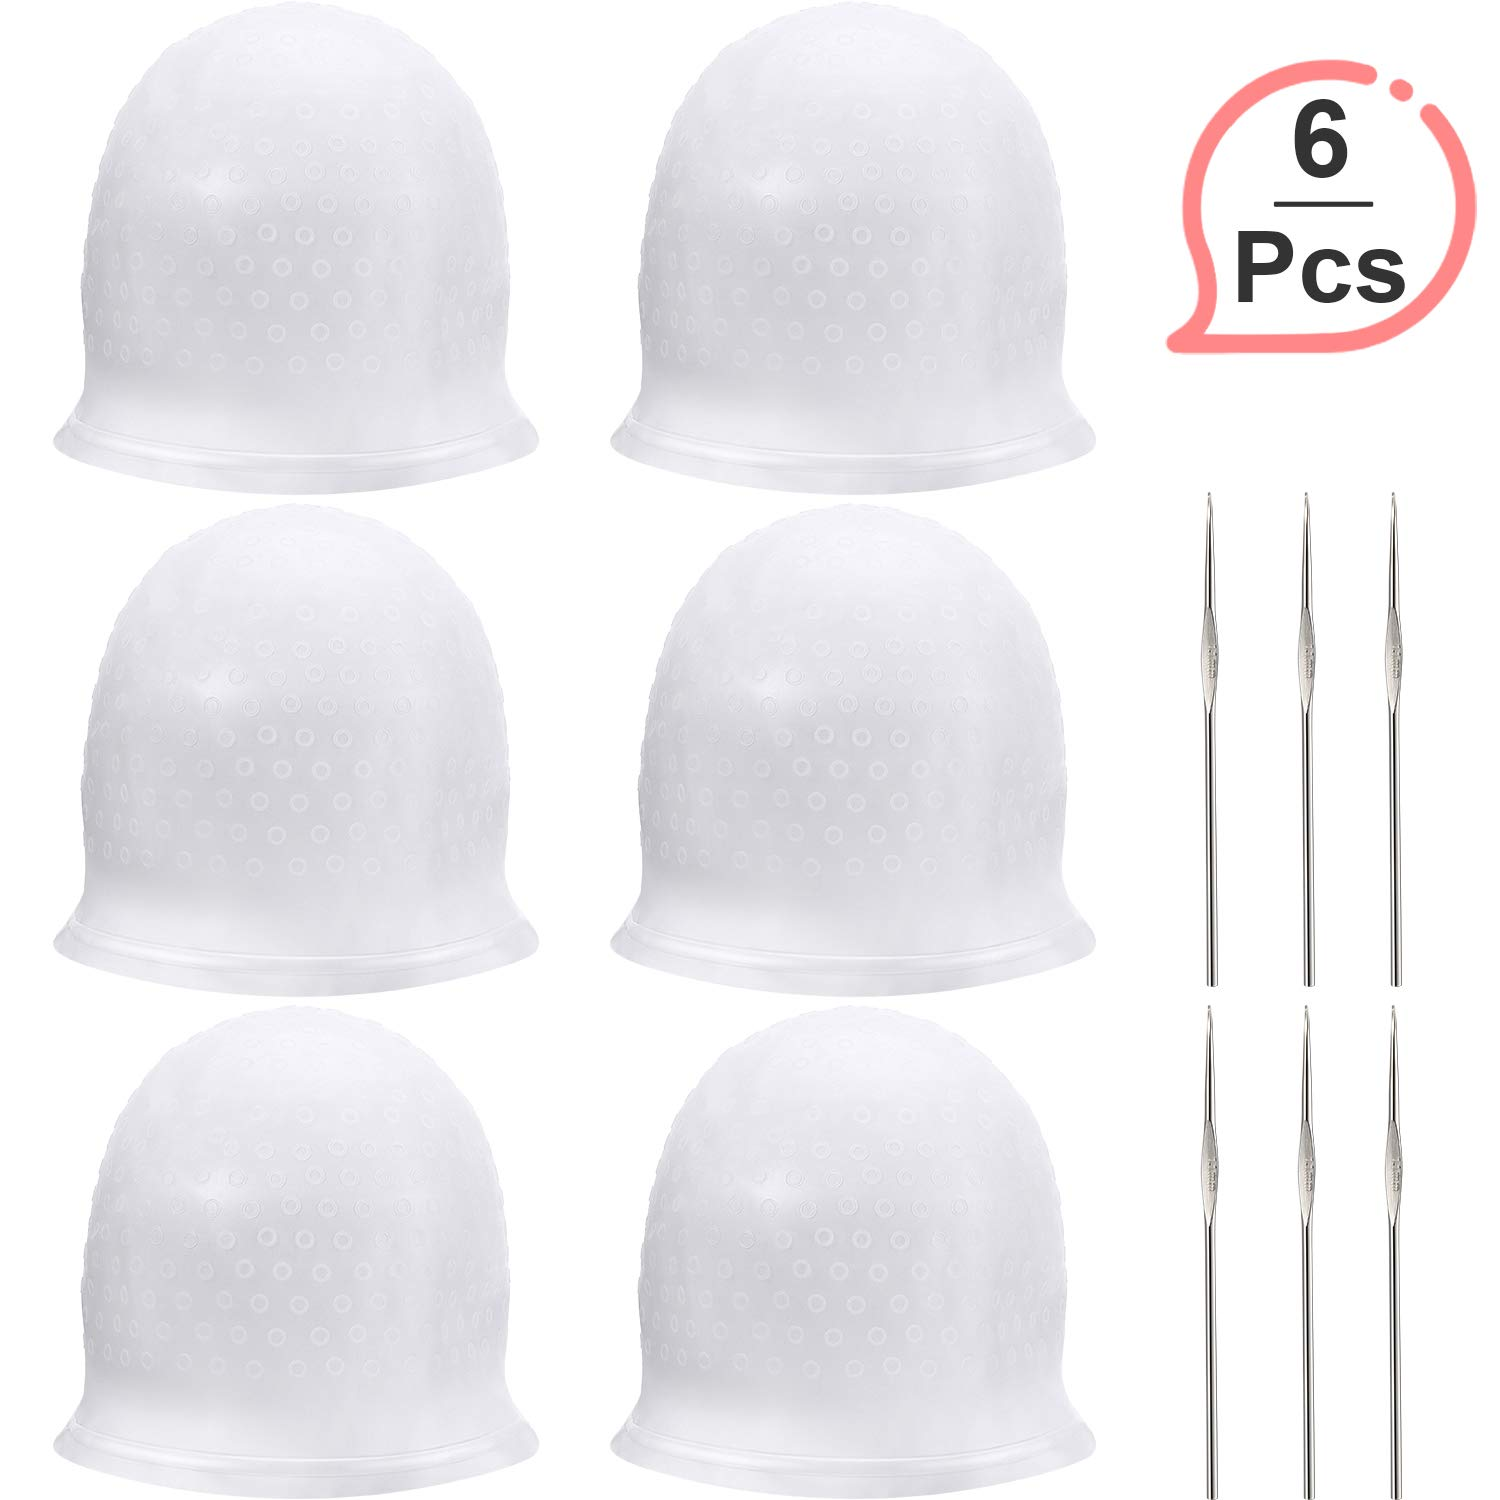 Silicone Highlight Cap Reusable Highlight Hair Cap Salon Hair Coloring Dye Cap with Hooks for Women Girls Dyeing Hair (6 Sets) by WILLBOND